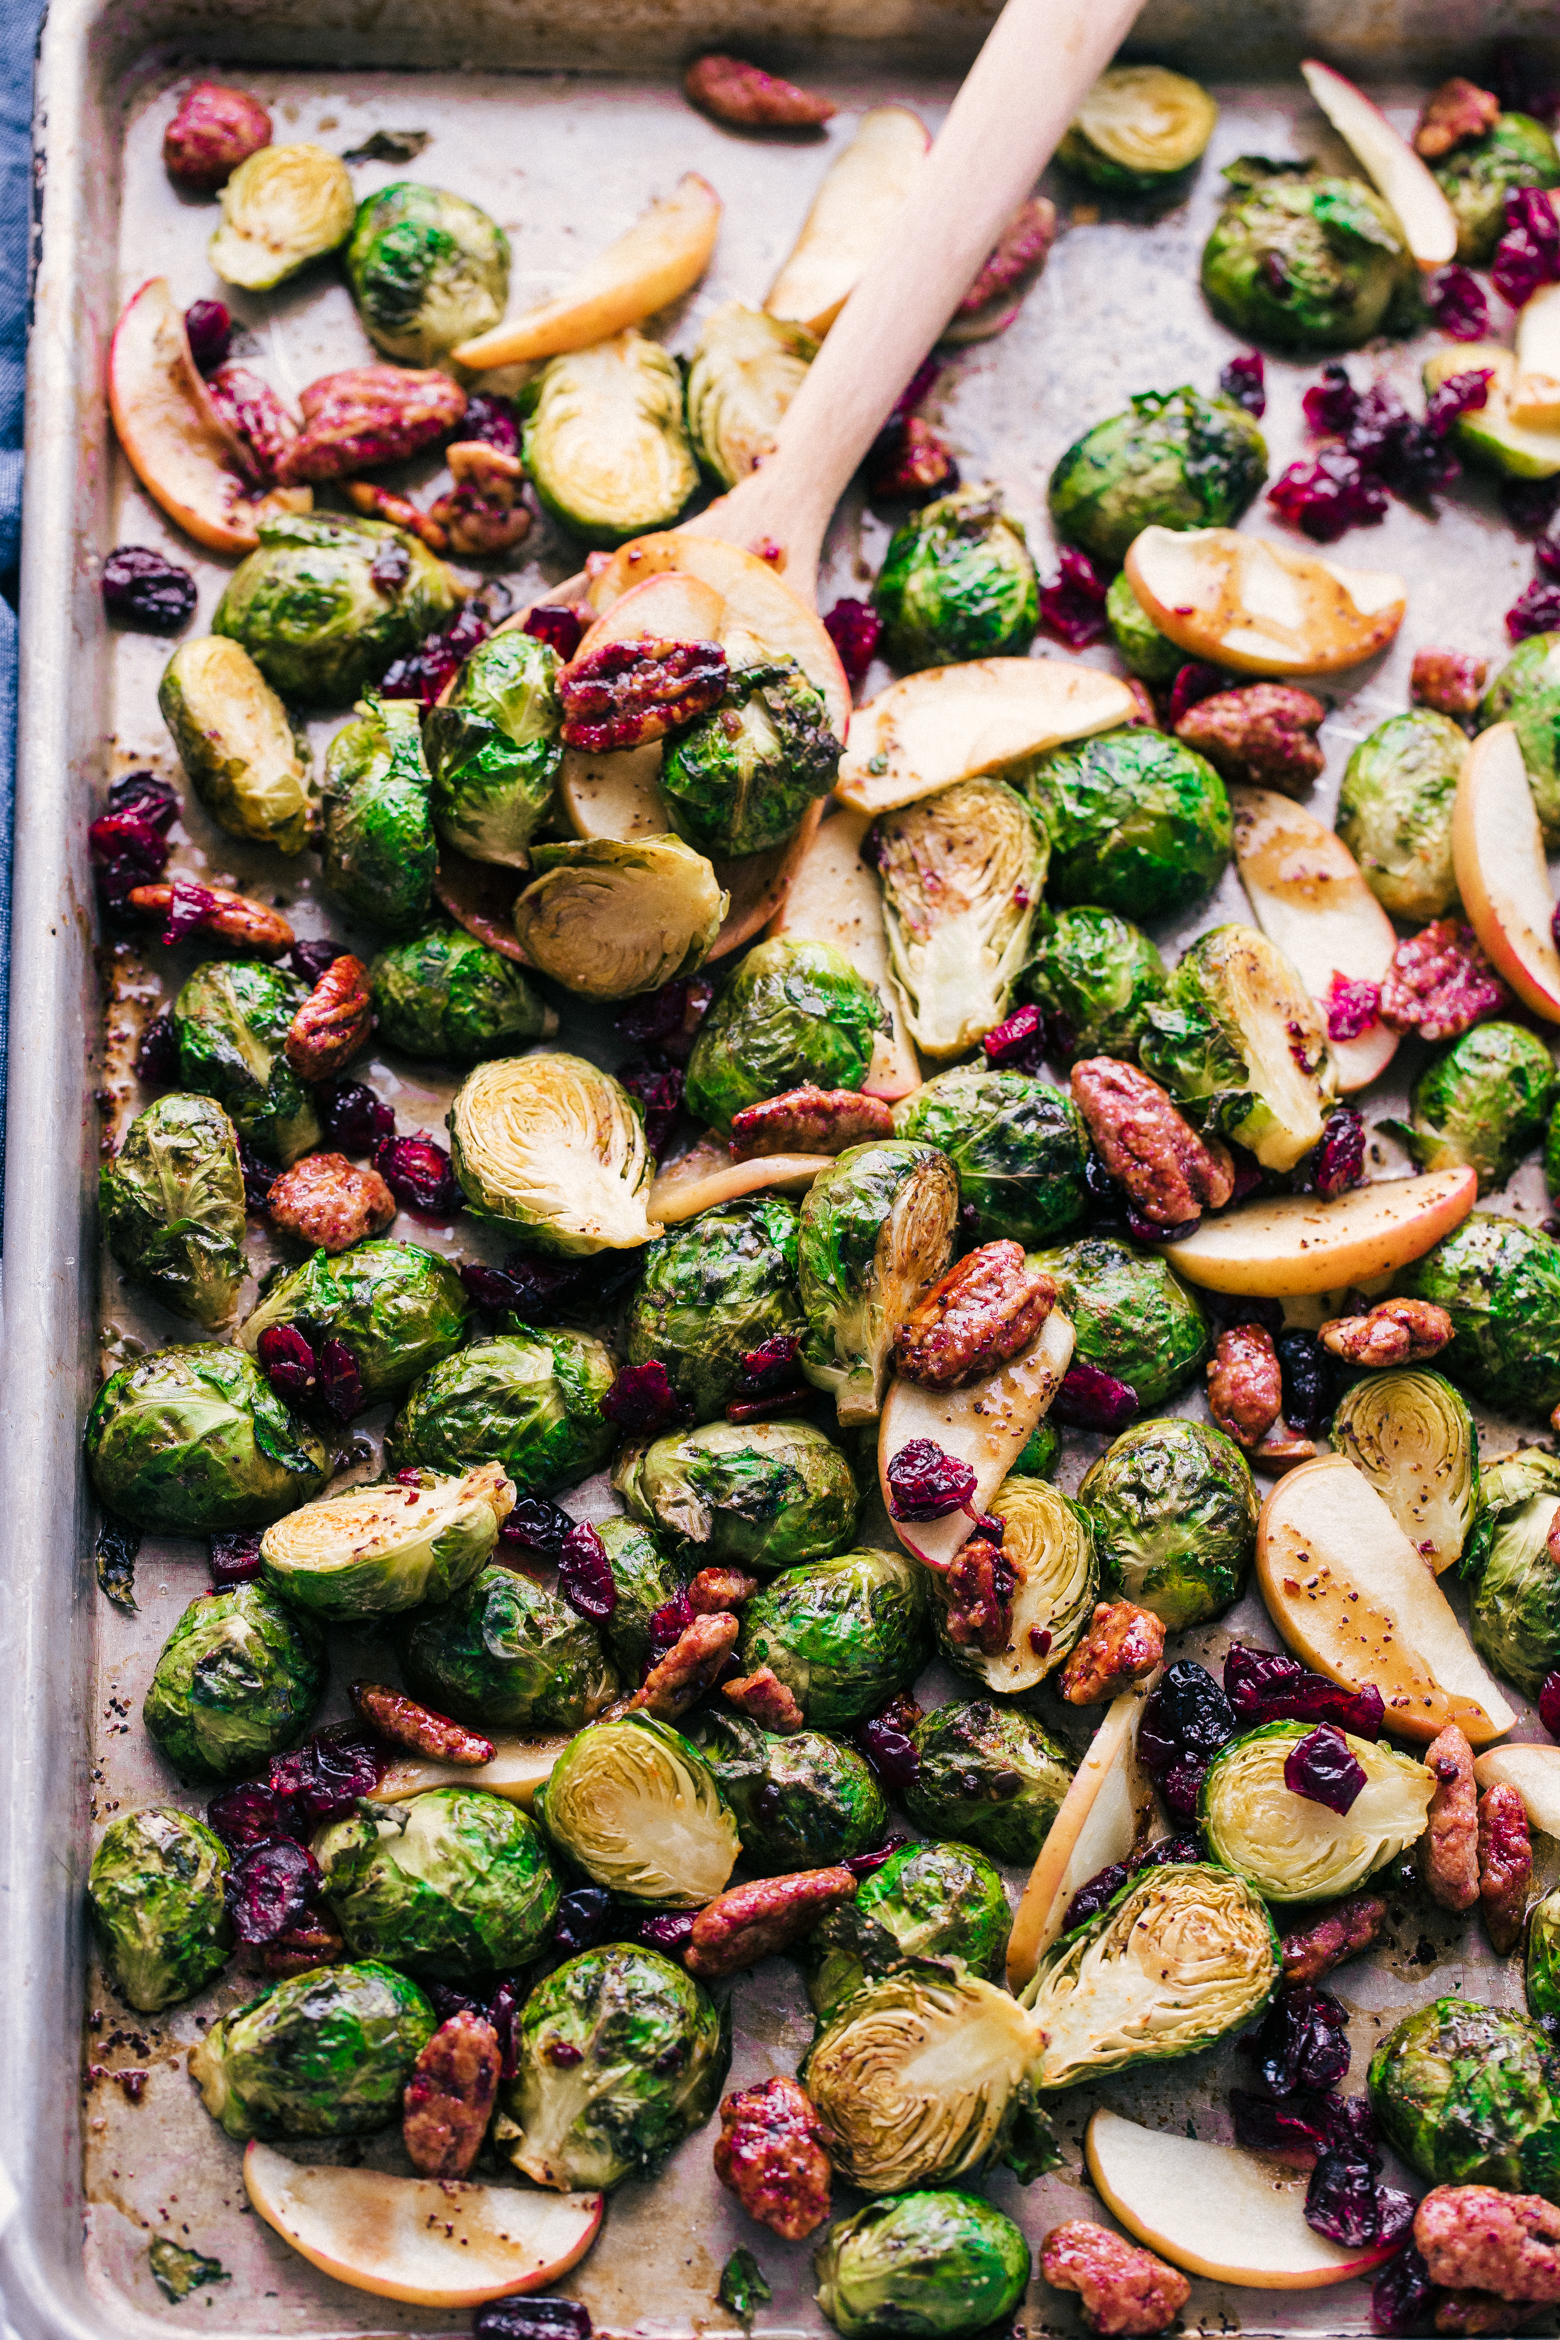 roasted brussels sprouts with balsamic dressing on a sheet pan by The Food Cafe